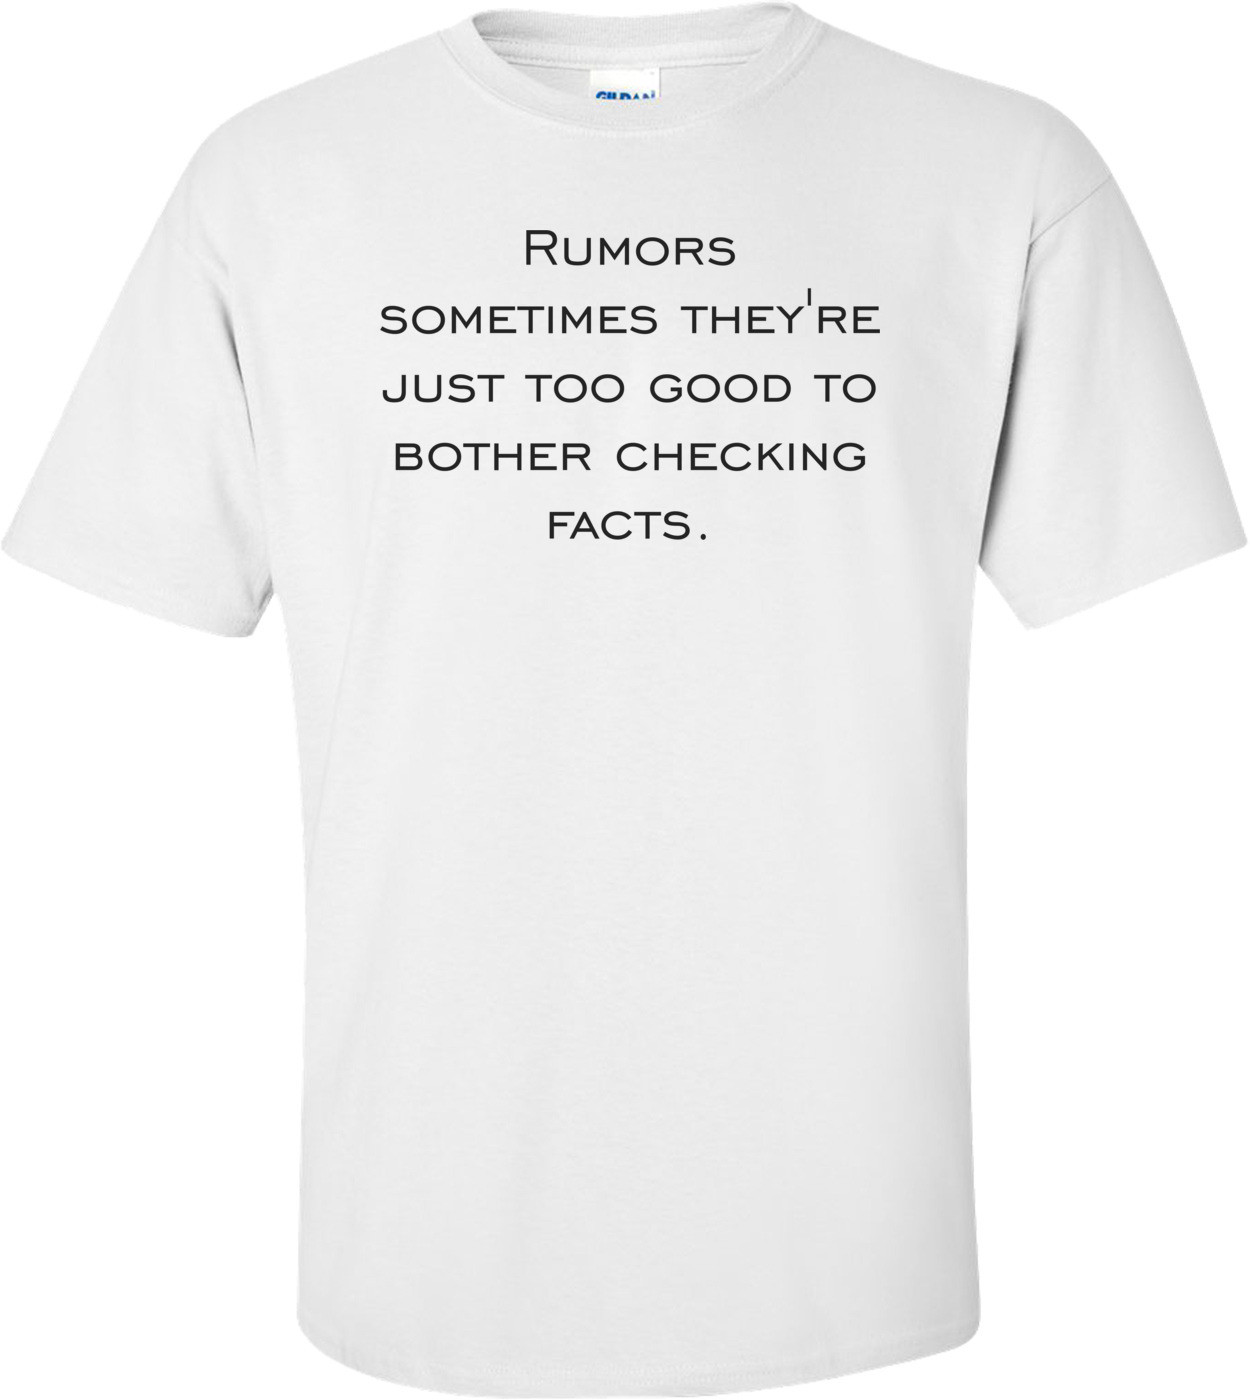 Rumors sometimes they're just too good to bother checking facts. Shirt